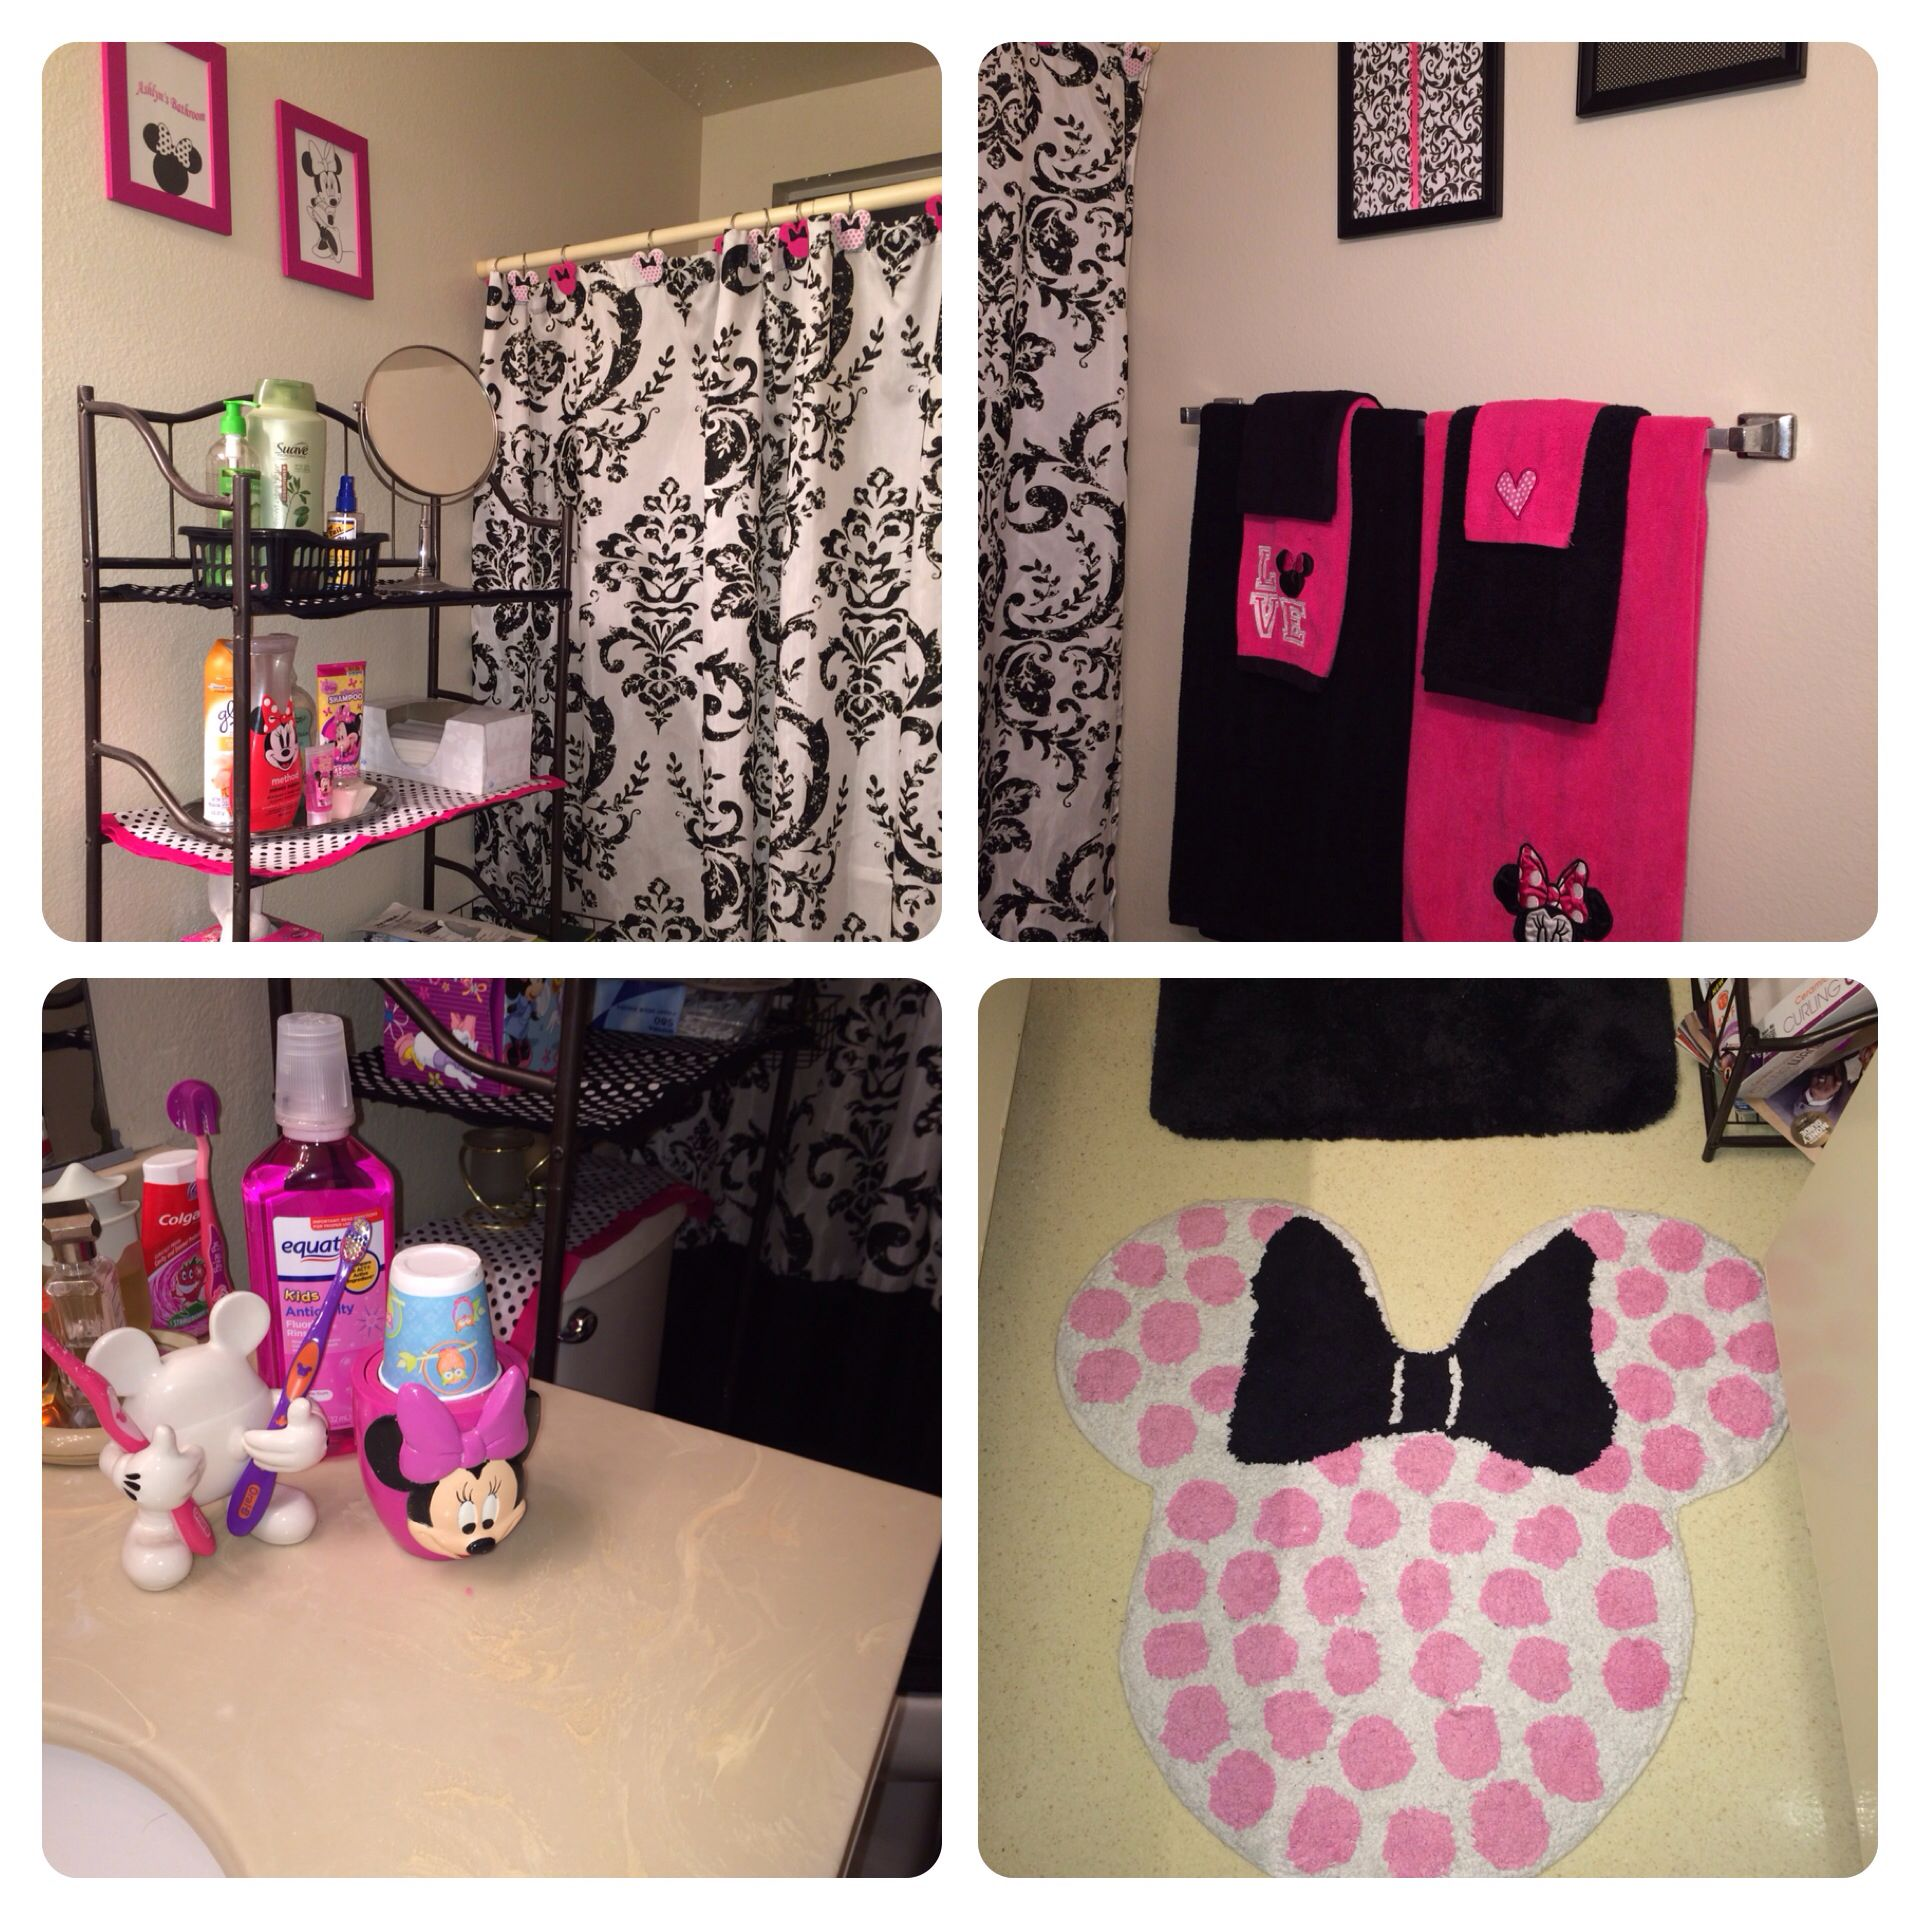 Kids Minnie Mouse Bathroom Minnie Mouse Bathroom Minnie Mouse